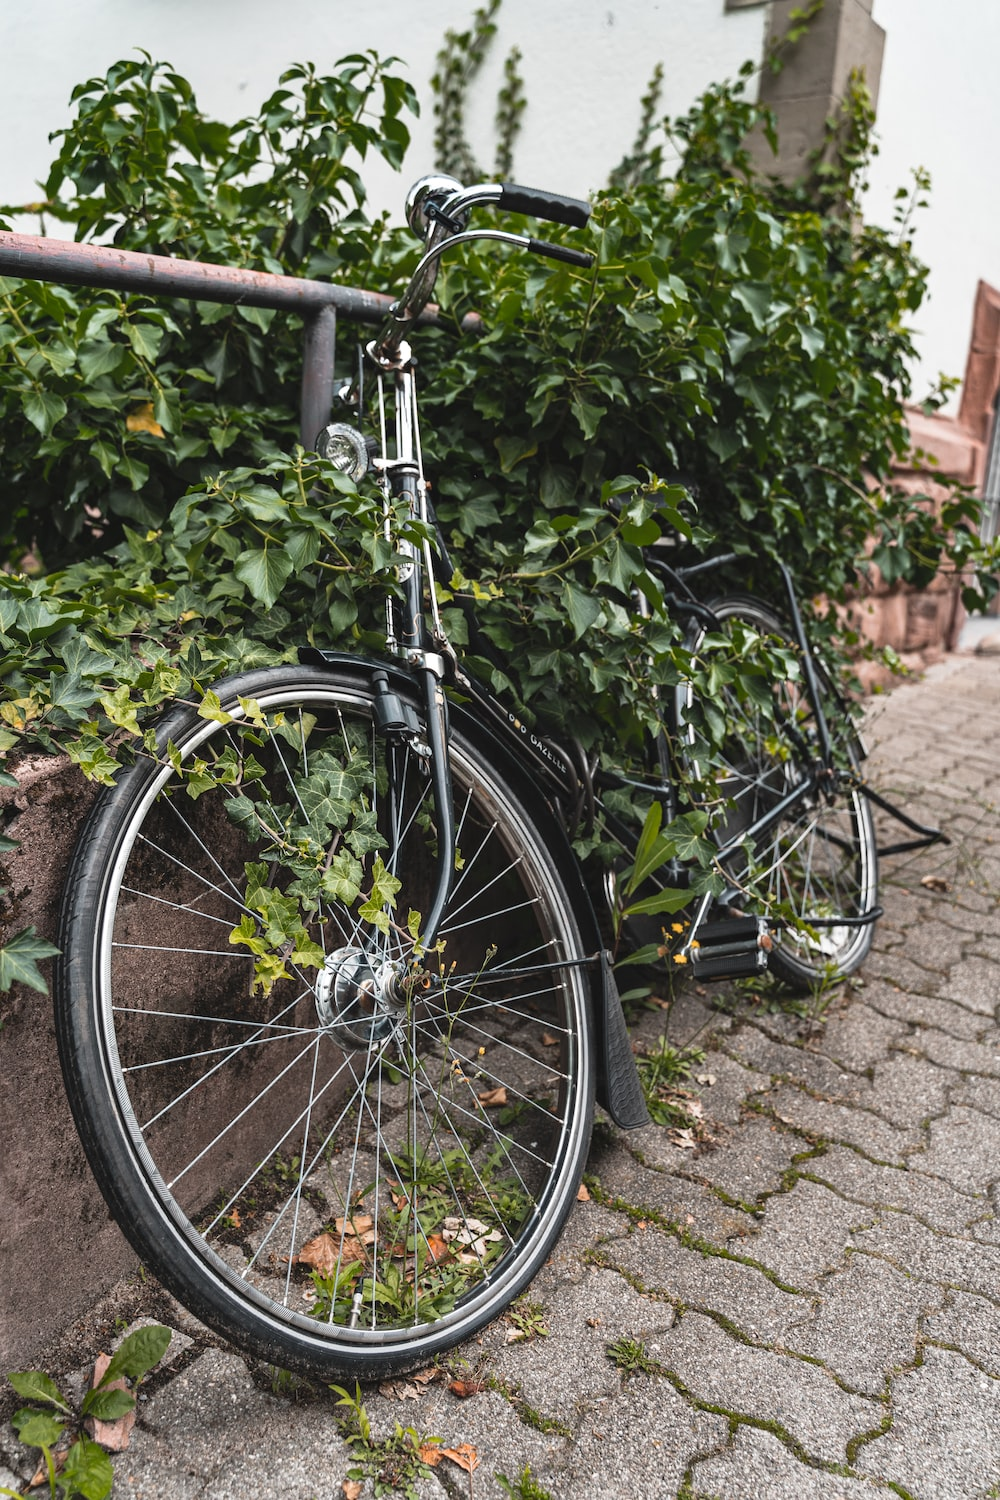 black bicycle parked beside green plants